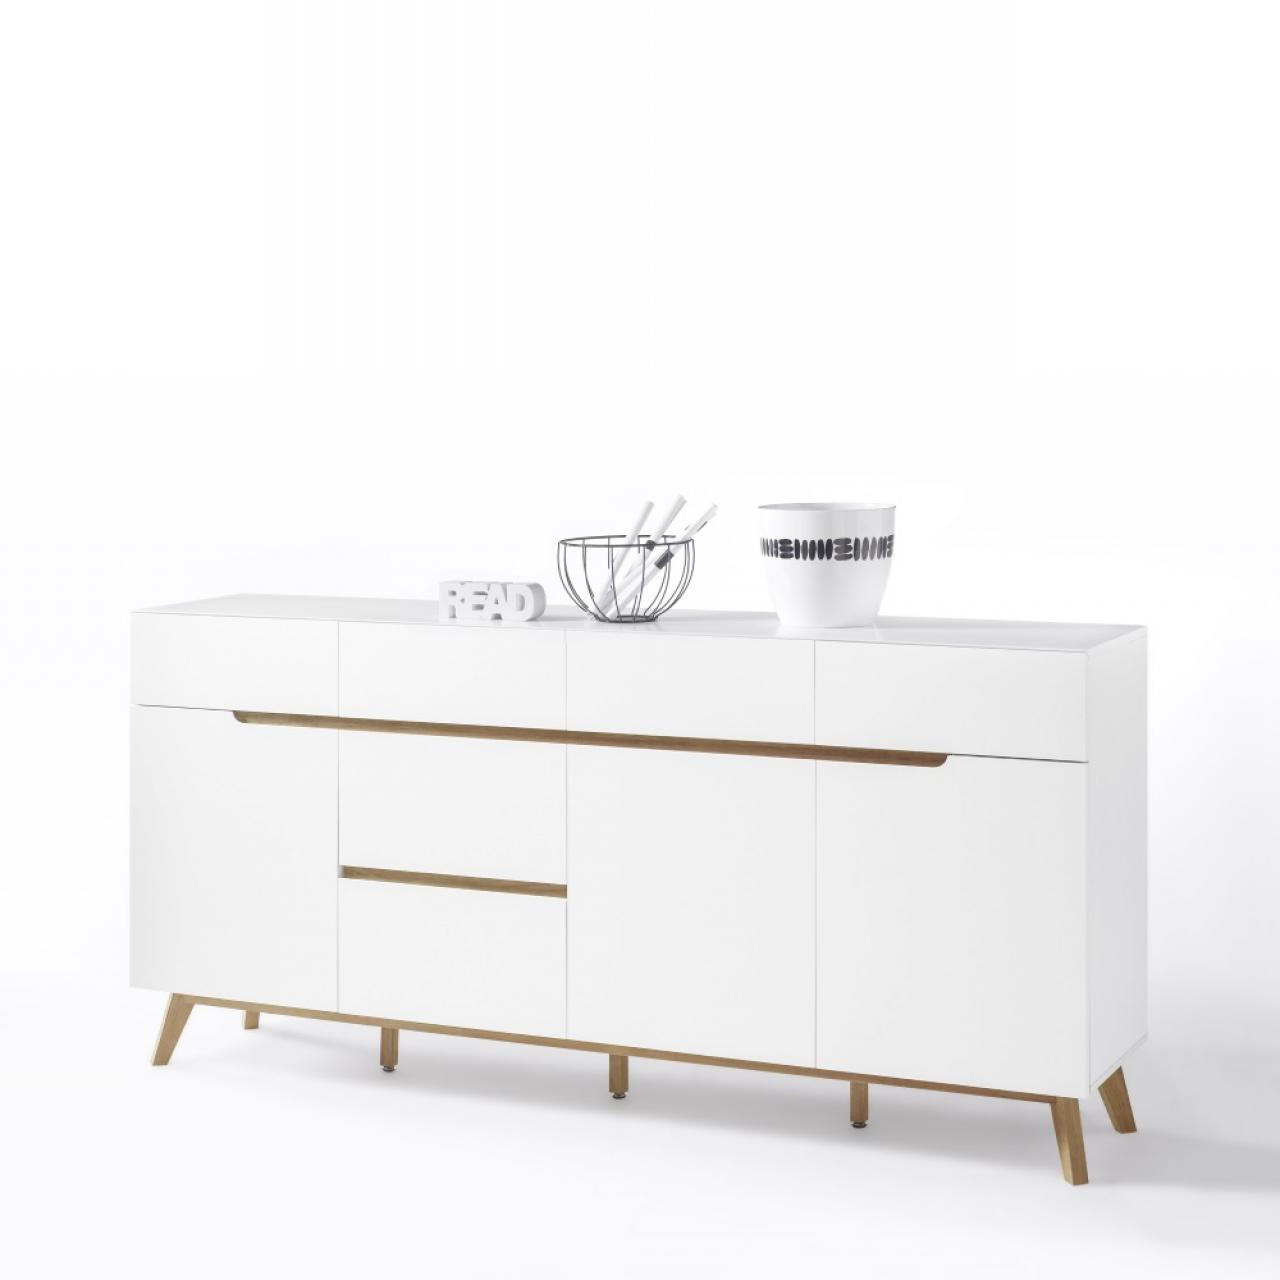 sideboard almeria beton wei 3 schubk sten 2 t ren m bel j hnichen center gmbh. Black Bedroom Furniture Sets. Home Design Ideas